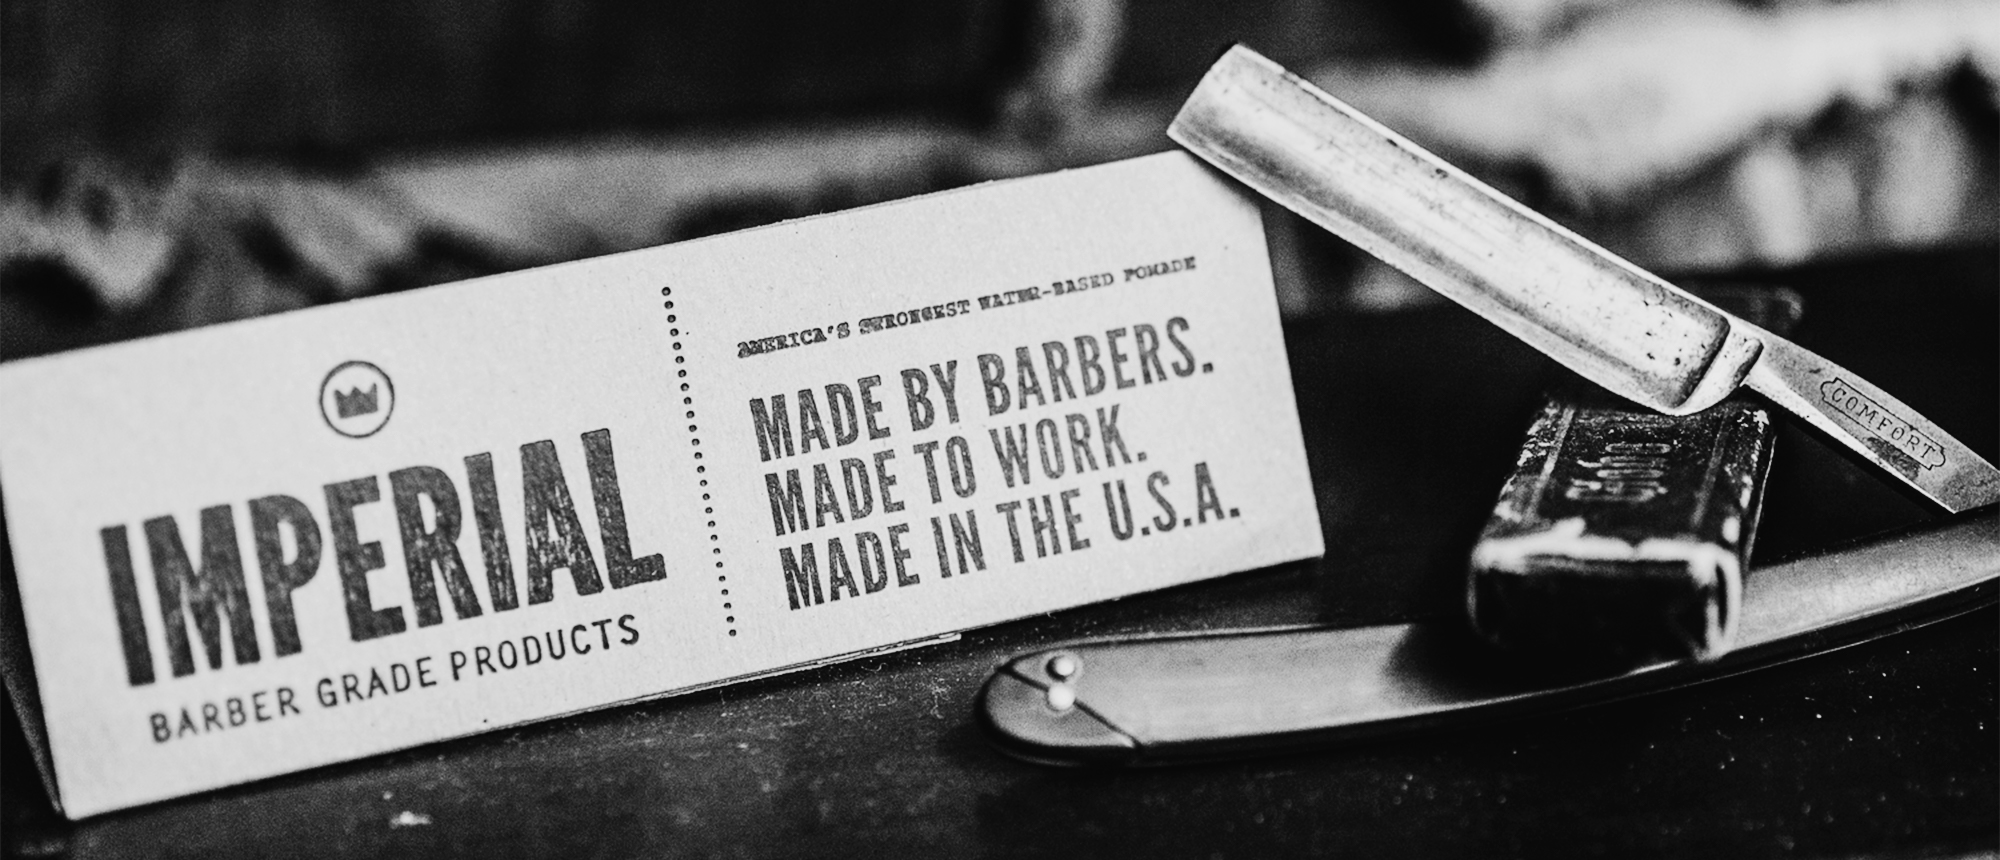 Contact Imperial Industries | Imperial Barber Products